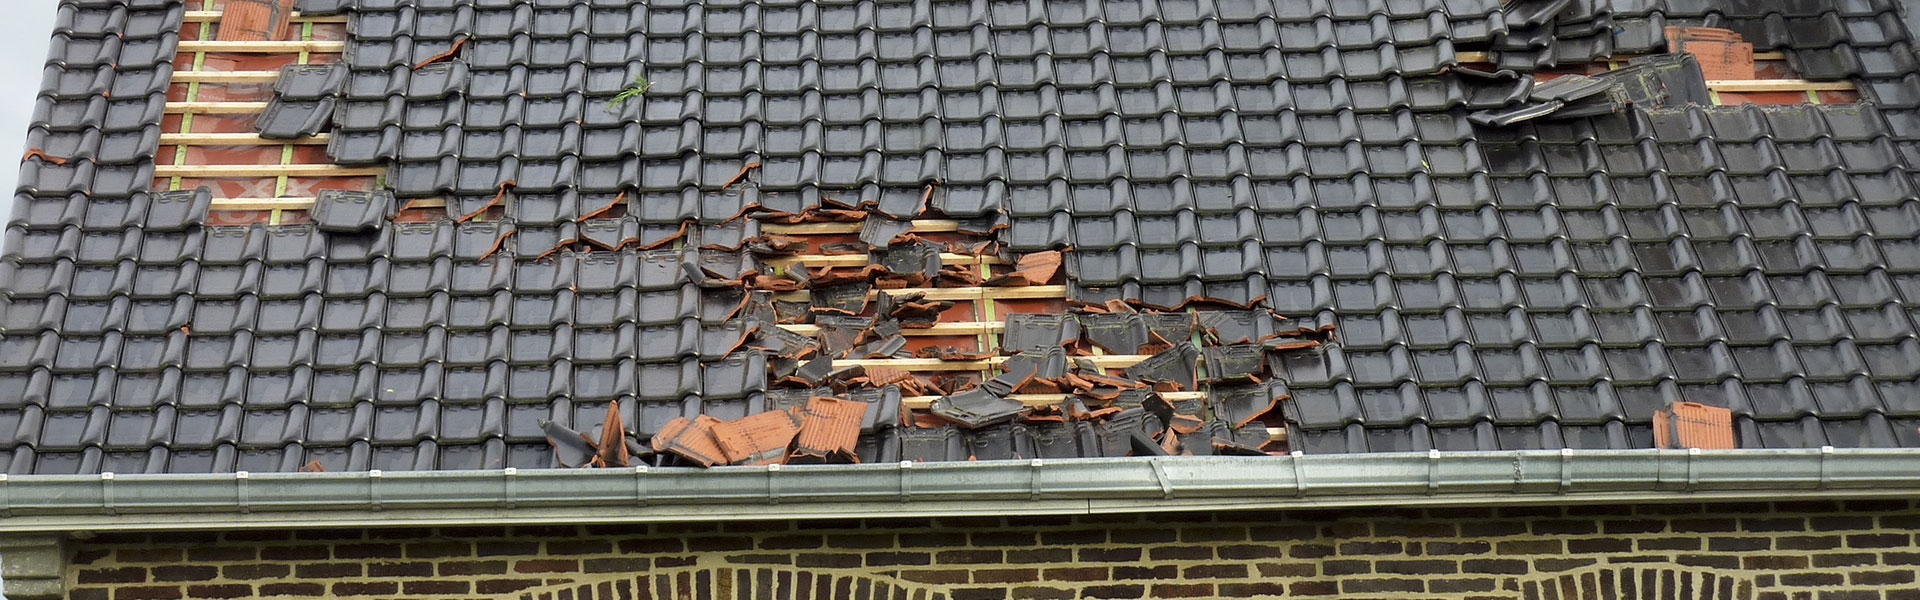 Aas Restoration And Roofing Kansas City Roof Damage Water